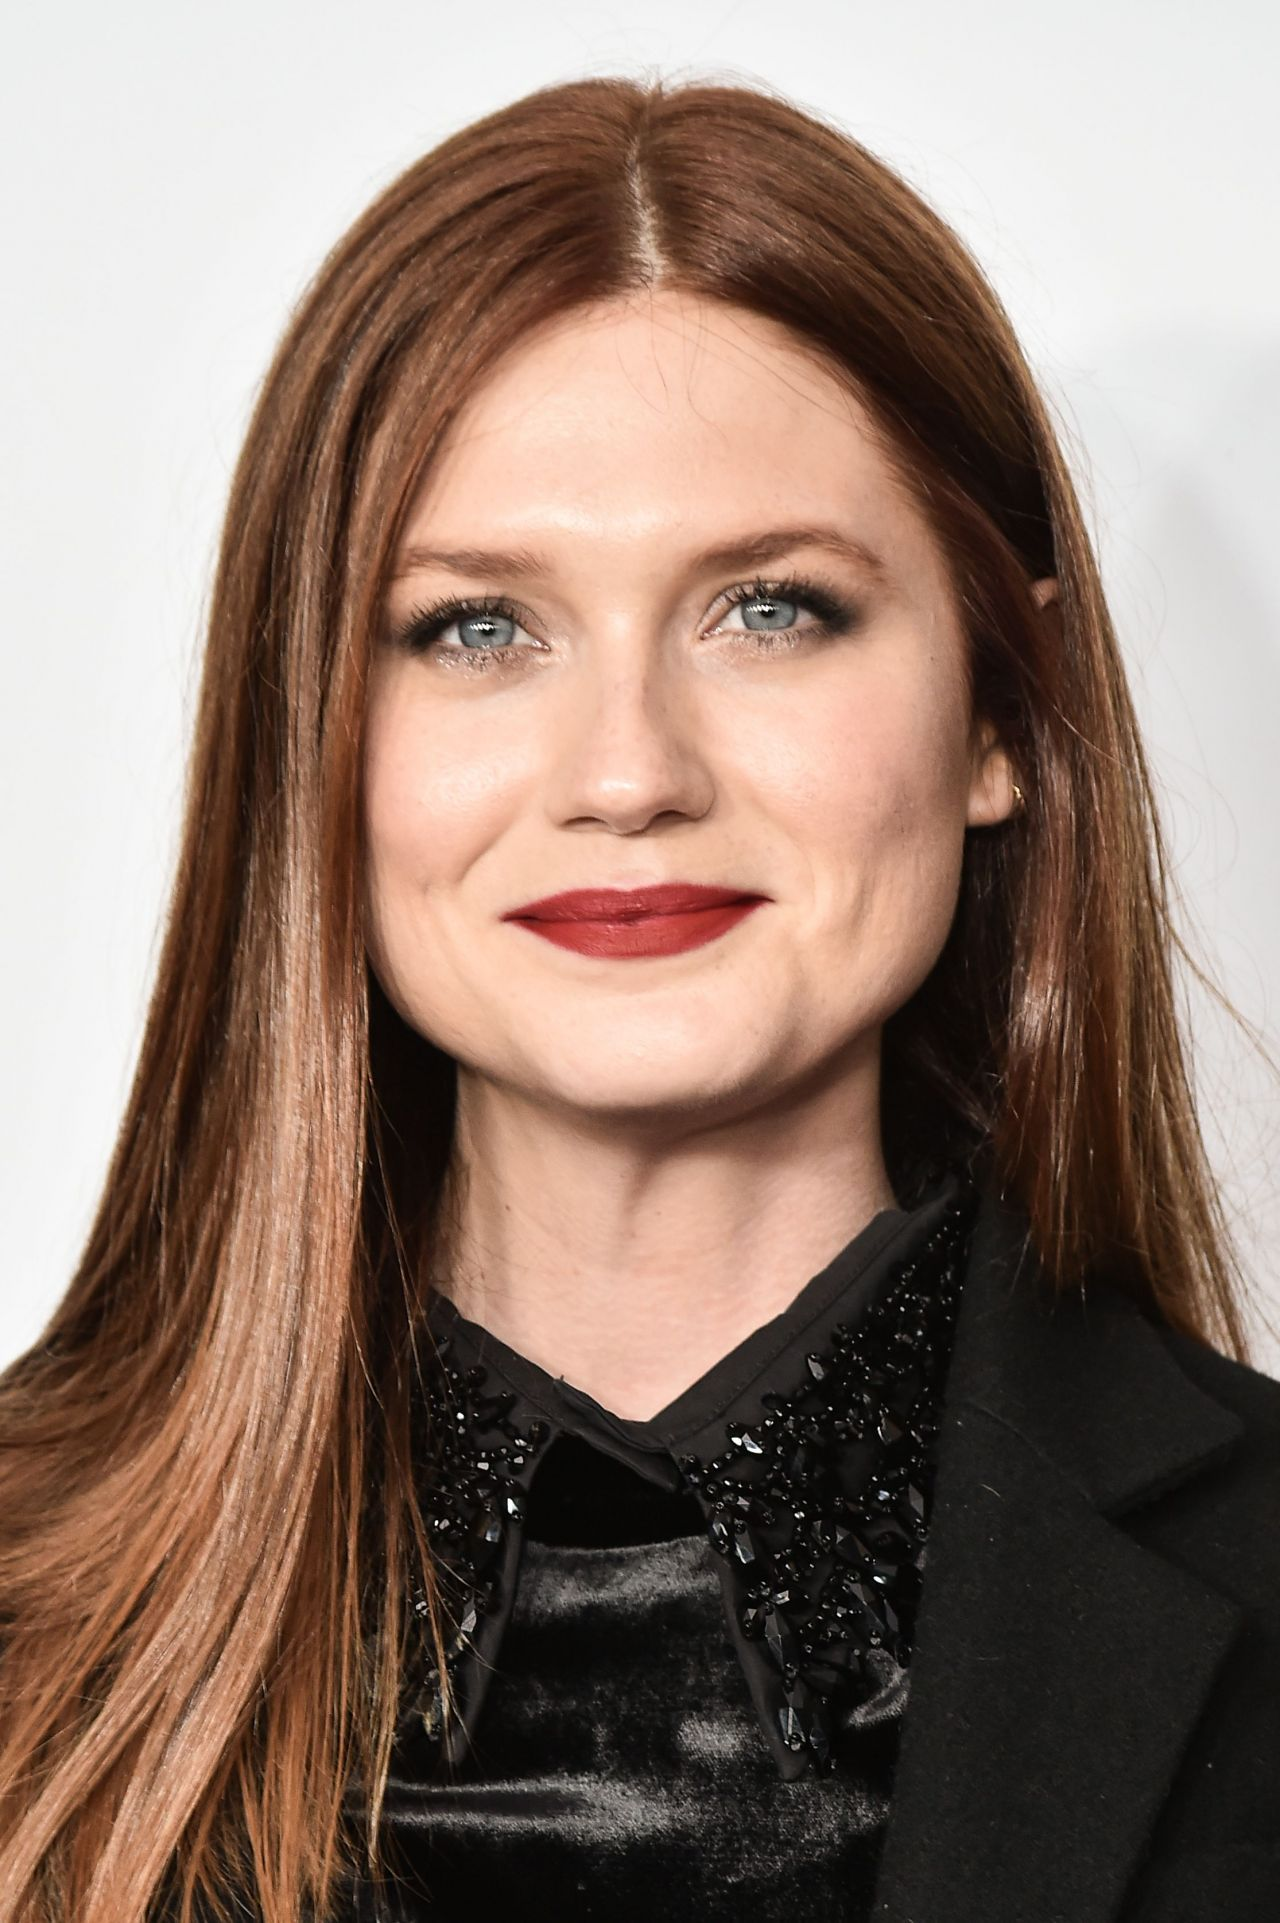 Discussion on this topic: Clare Kramer, bonnie-wright-born-1991/